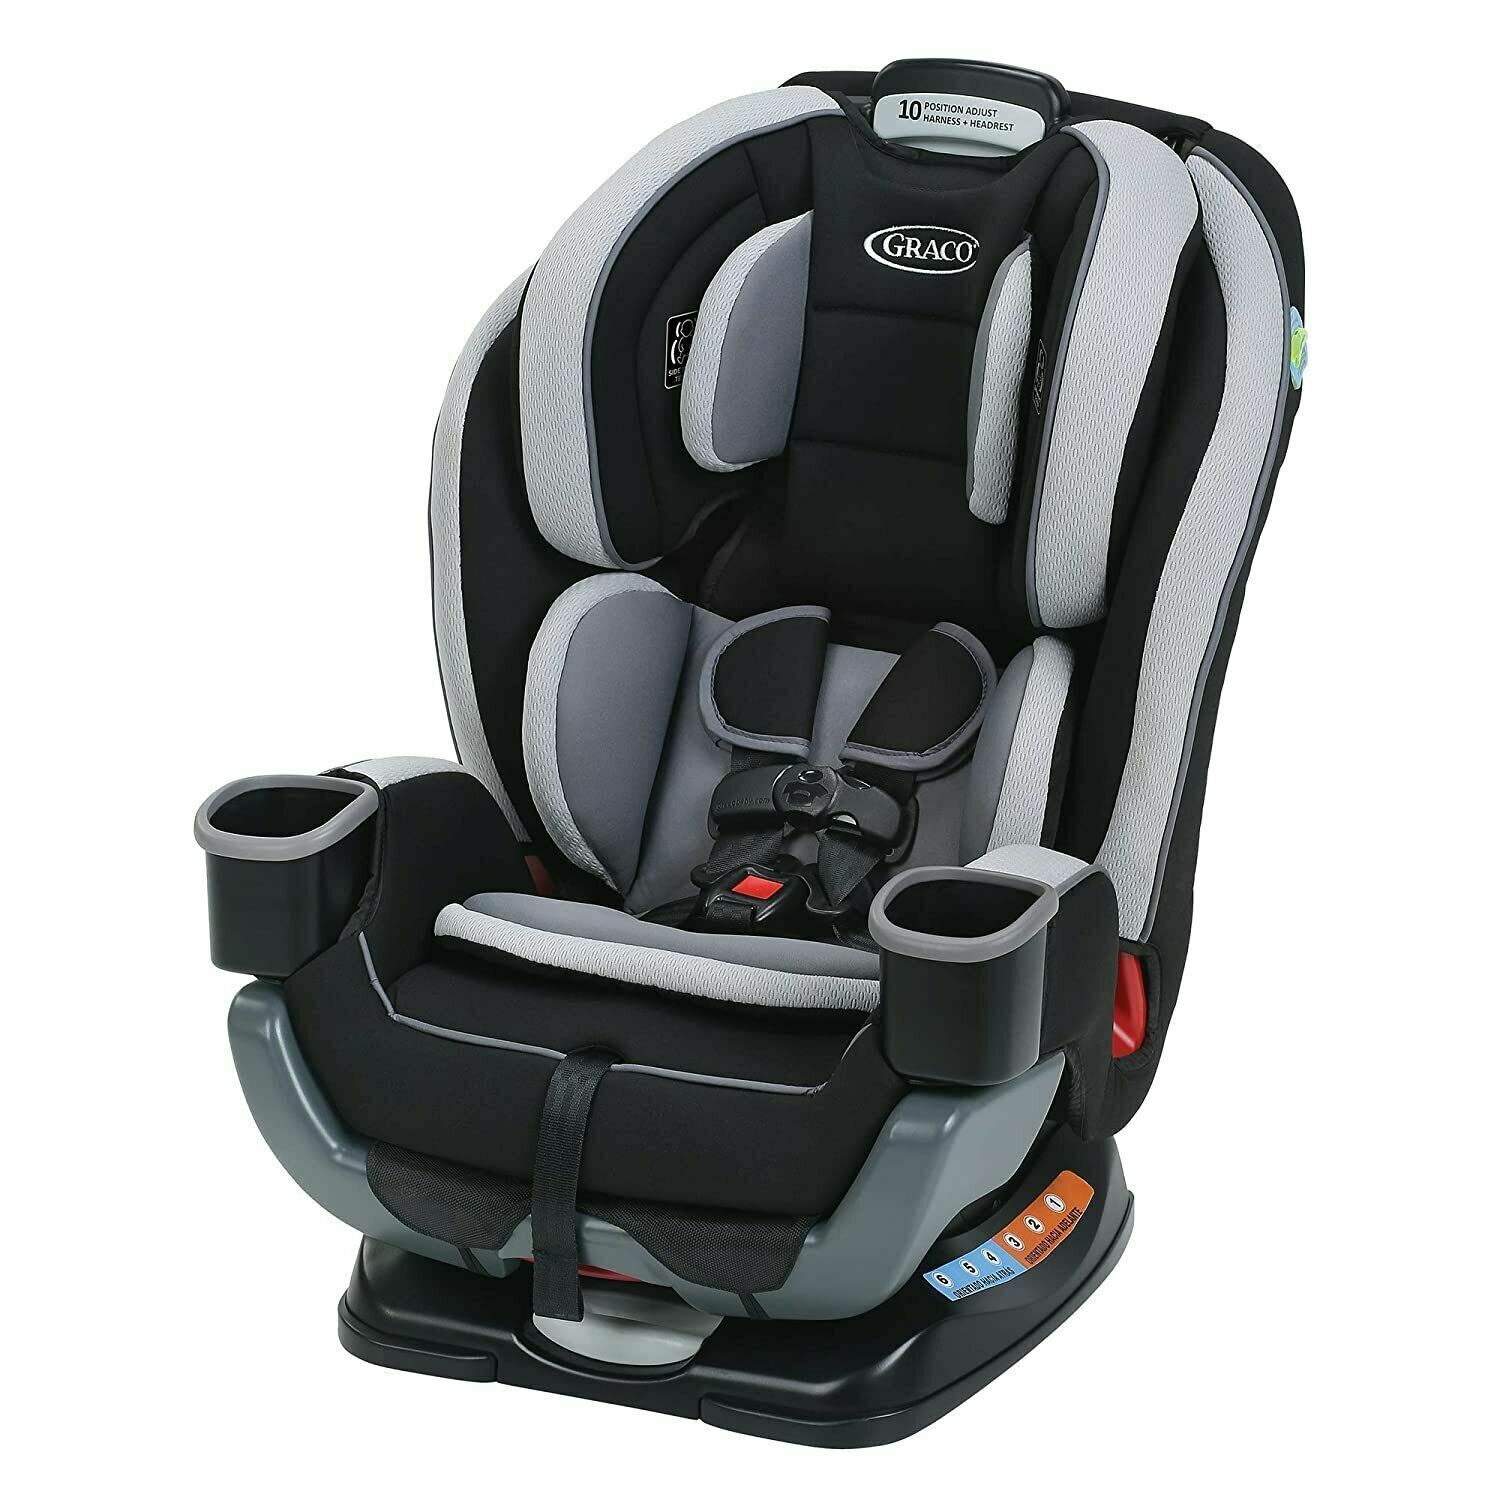 Graco Extend2Fit 3 In 1 Car Seat Ride Rear Facing Longer Garner - $199.00